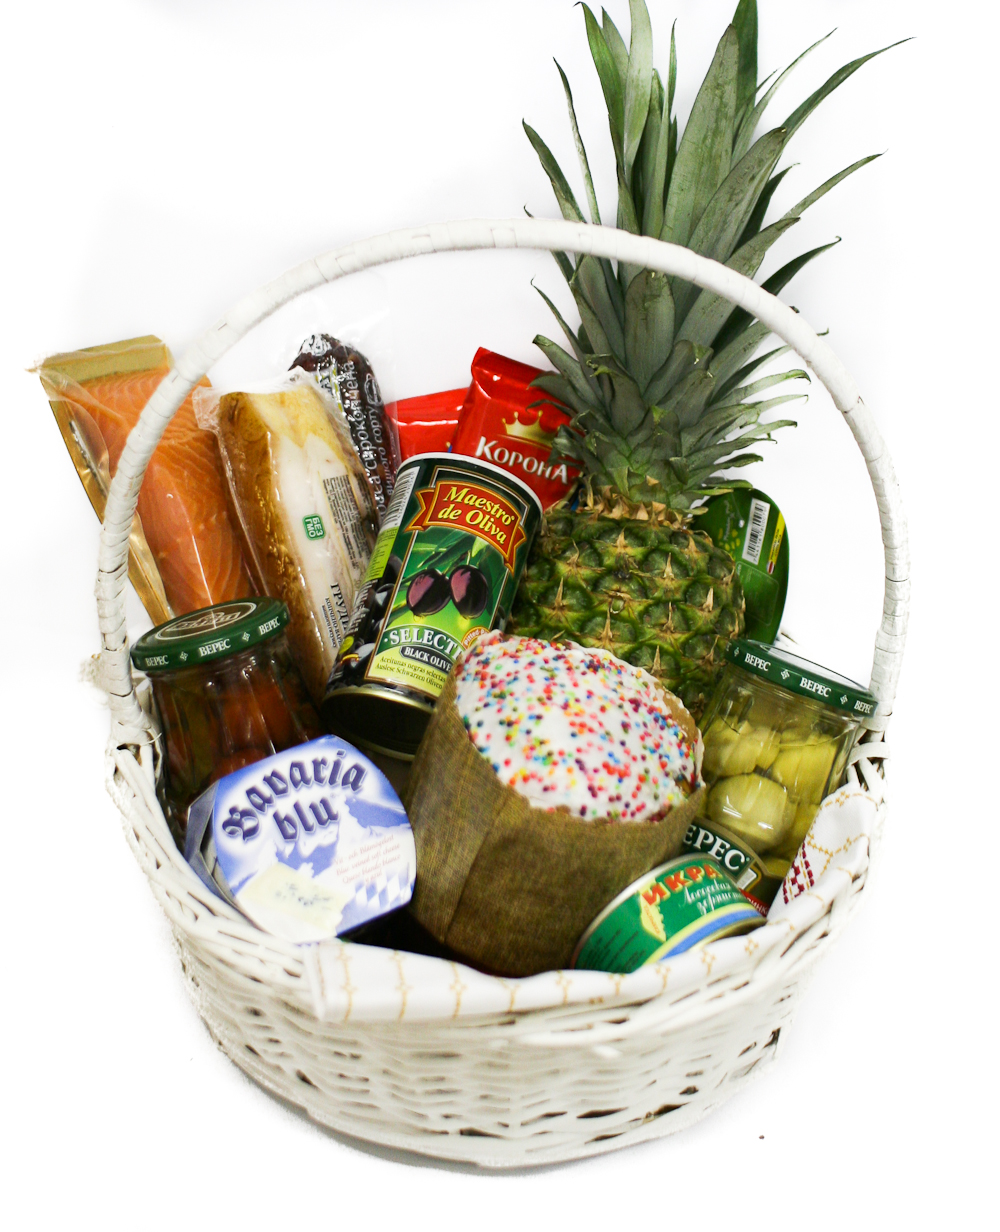 Easter basket ukrflower flower delivery kiev ukraine easter basket ukrflower flower delivery negle Image collections